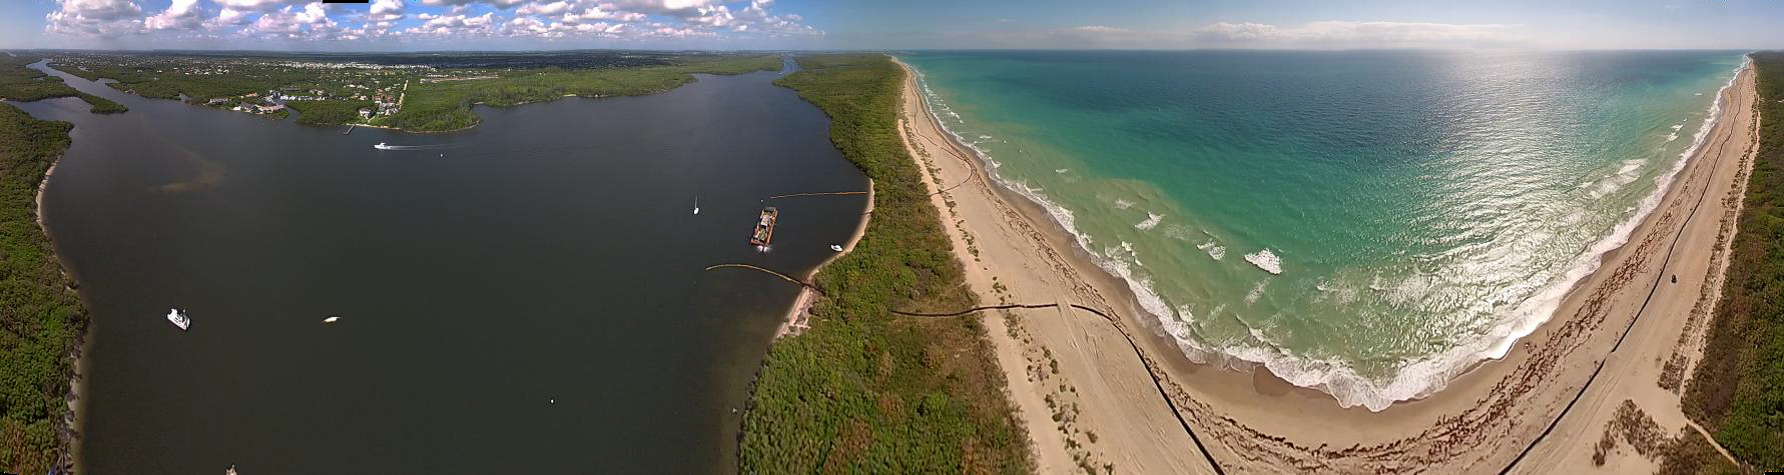 St. Lucie Inlet – Martin County, FL